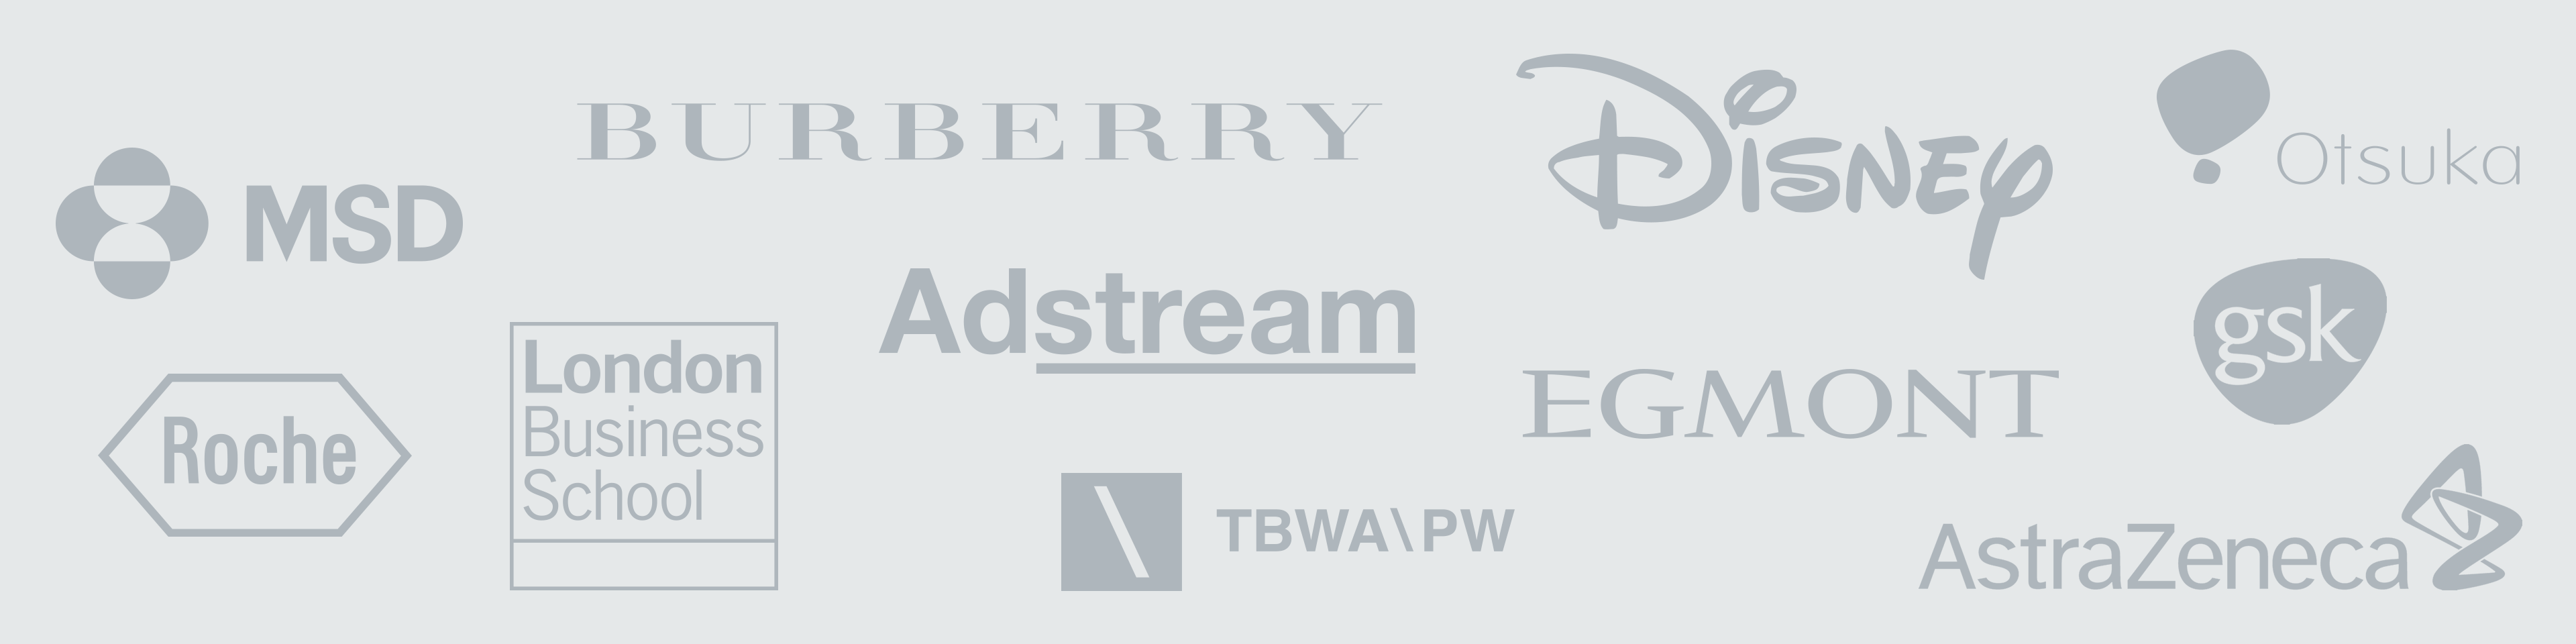 Corporate Portfolio Logos: MSD, Burberry, Disney, Otsuka, Roche, London Business School, Adstream, Egmont, GSK, TBWA\Paling Walters, Astrazeneca